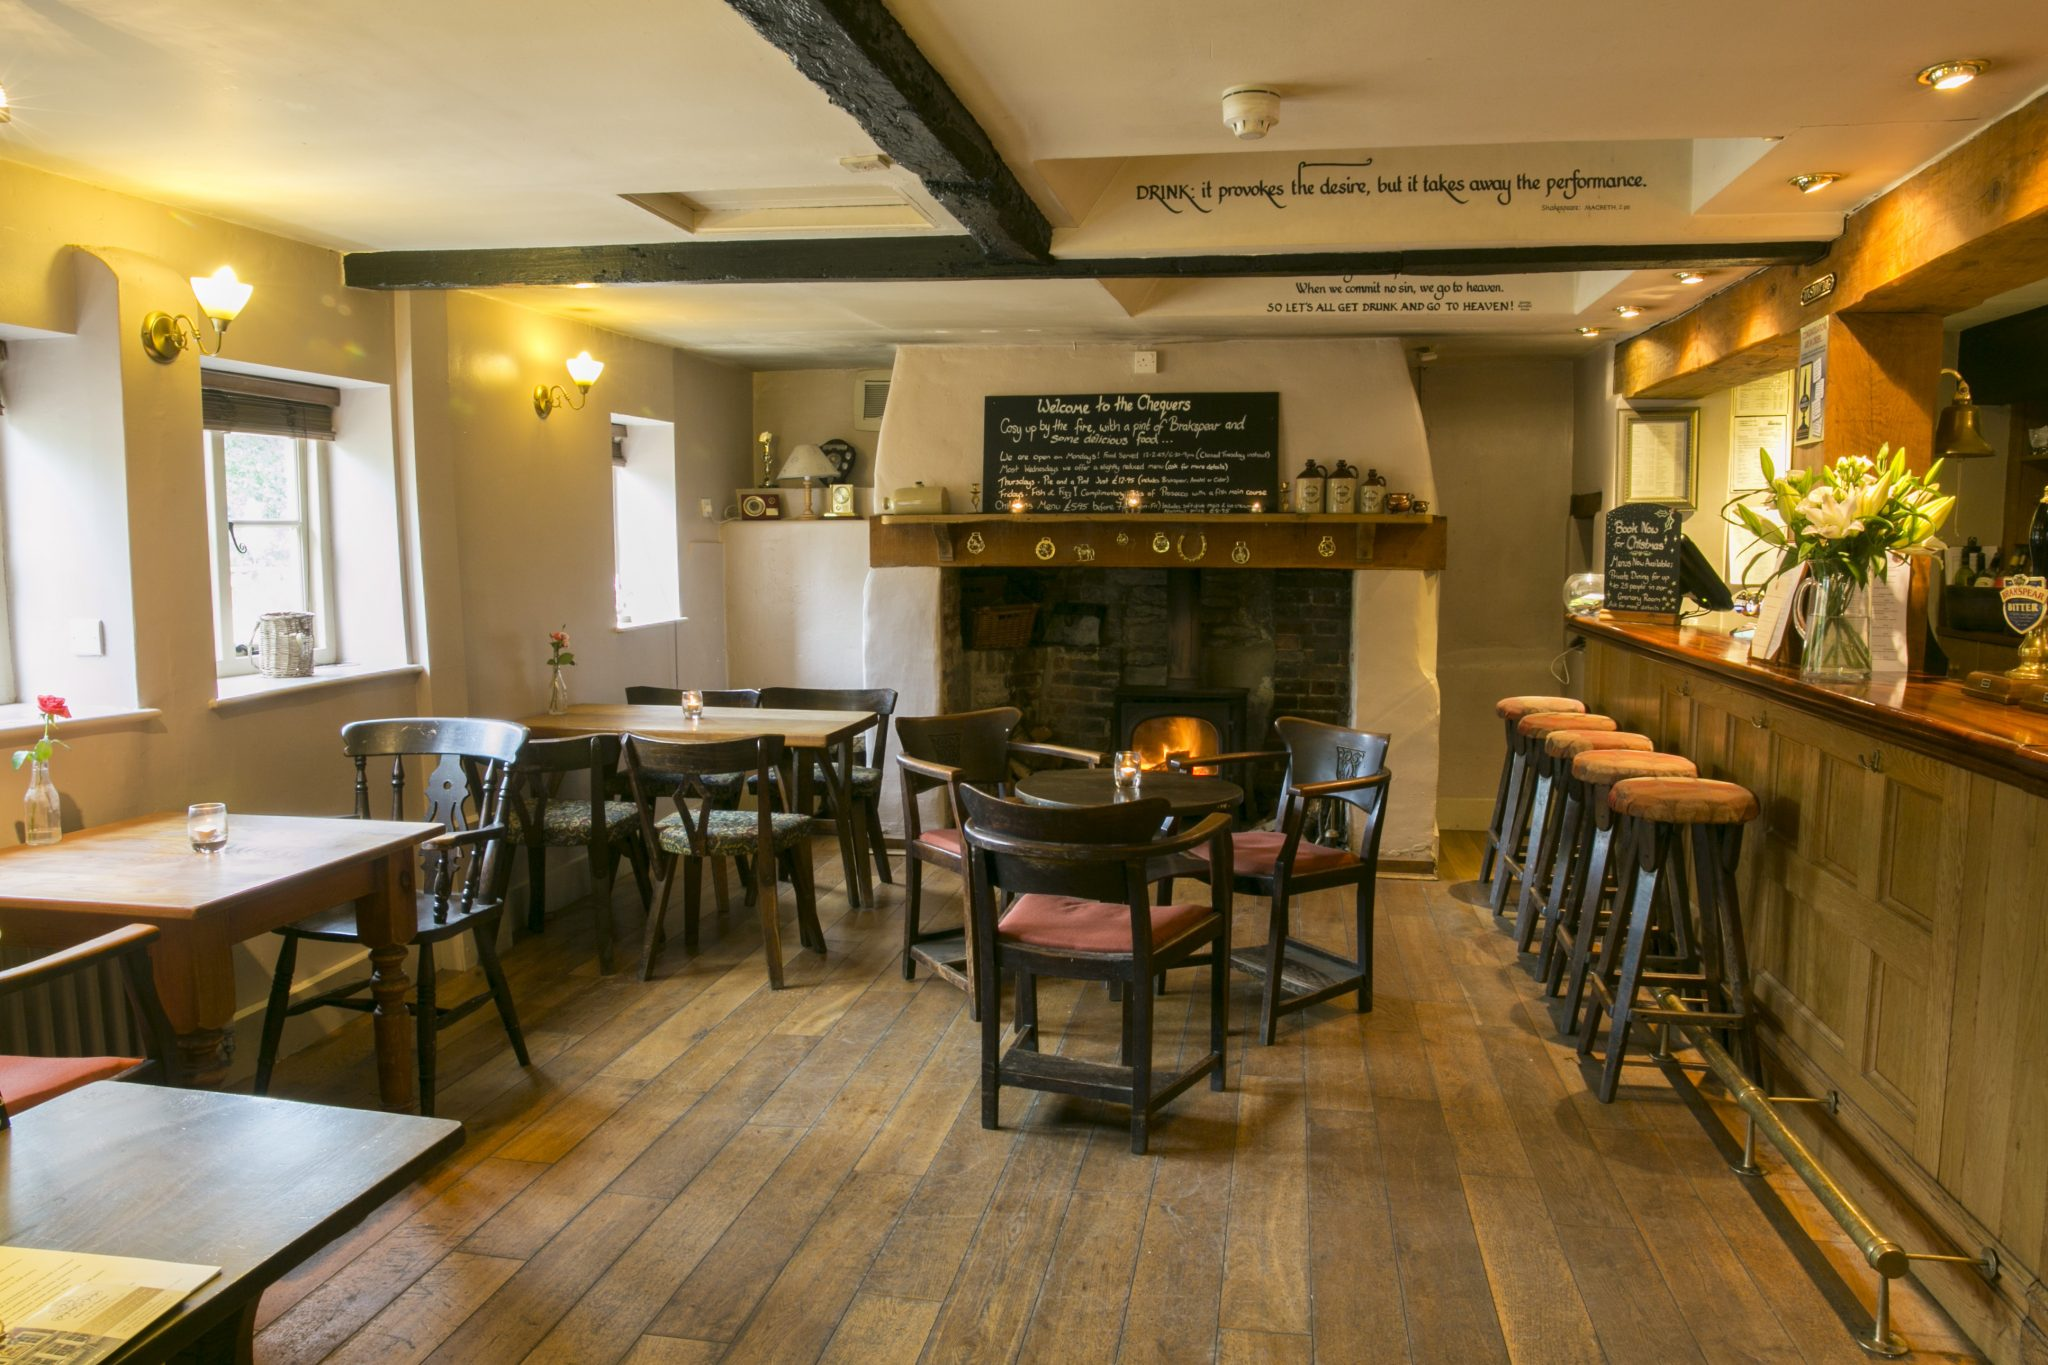 The Chequers Inn, Berrick Salome, Wallingford, Oxfordshire